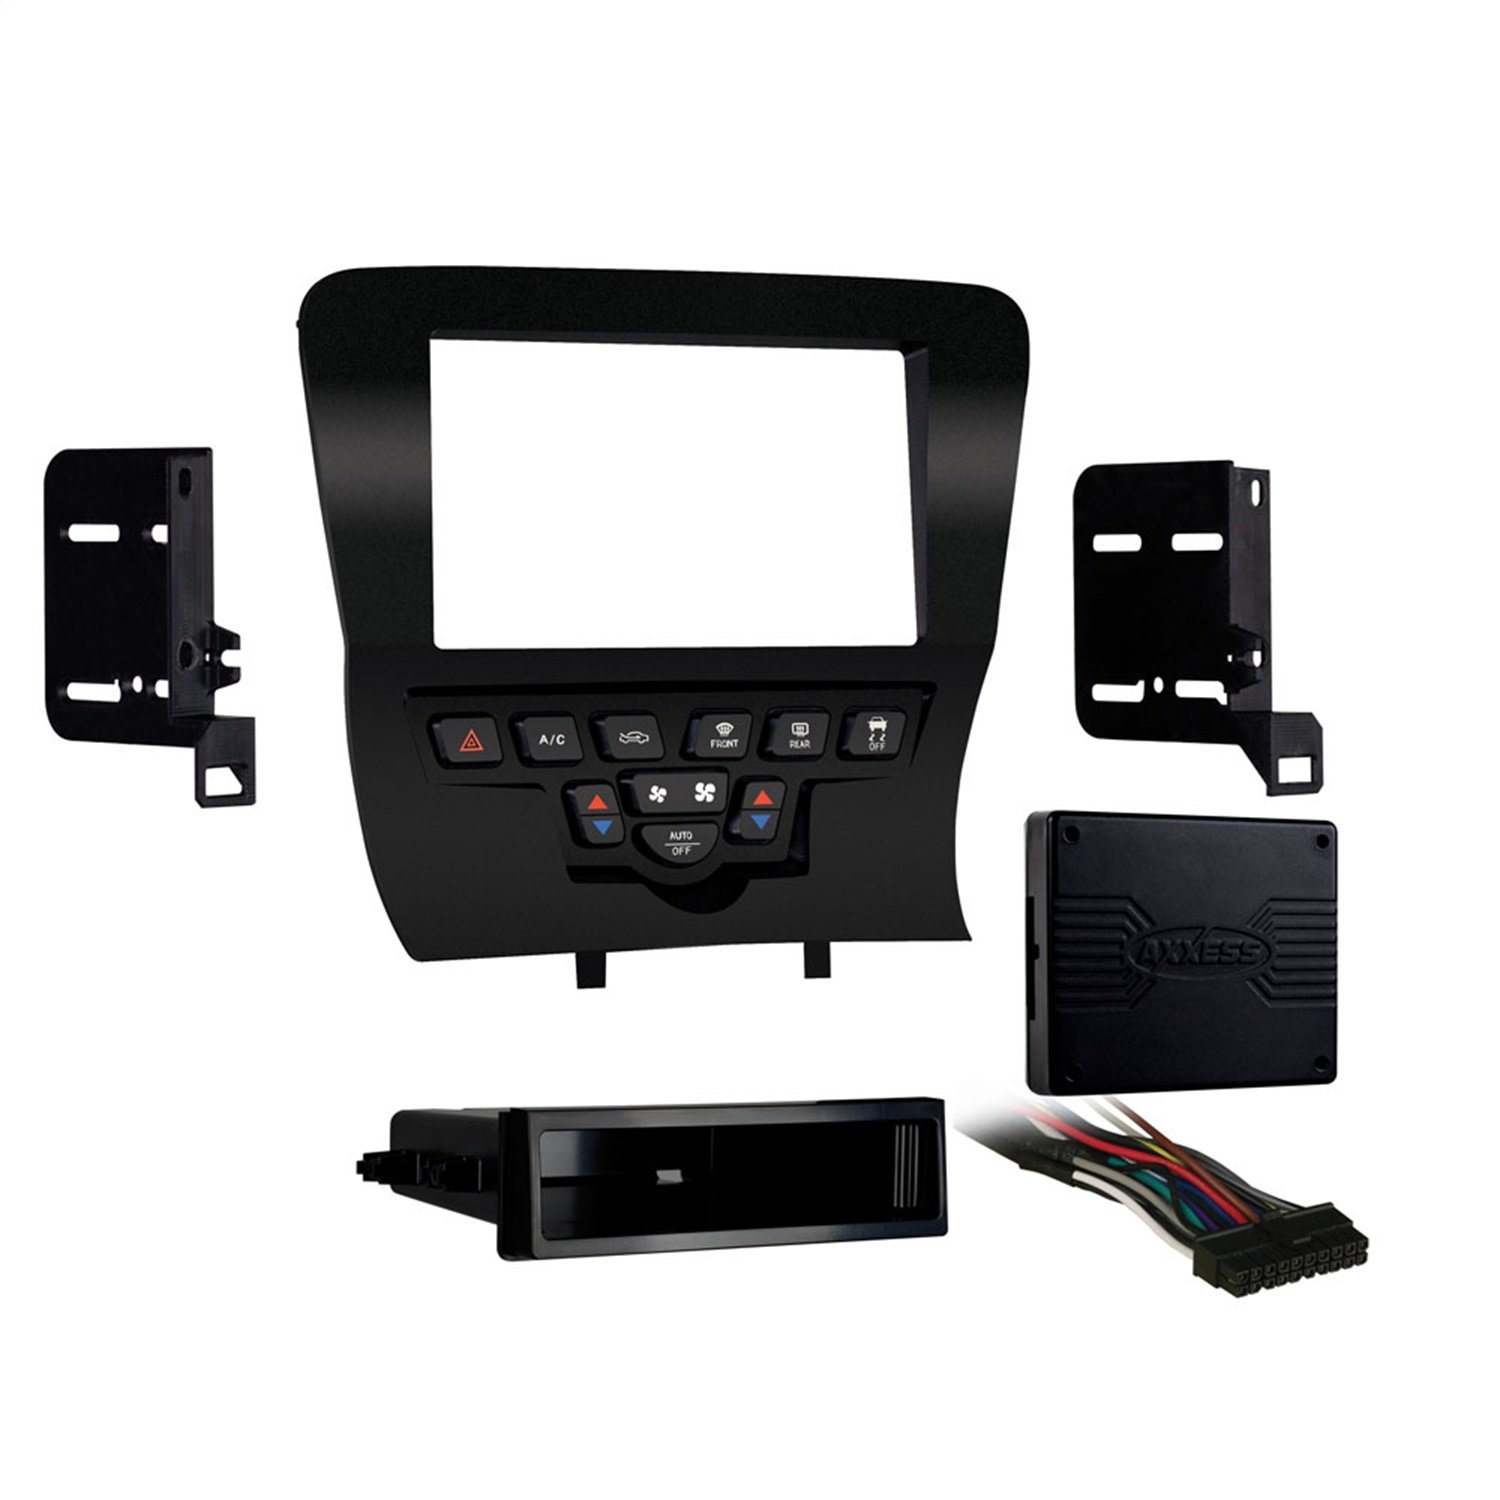 Metra 99-6514B Single/Double DIN Installation Kit for Select 2011-Up Dodge Charger Vehicles